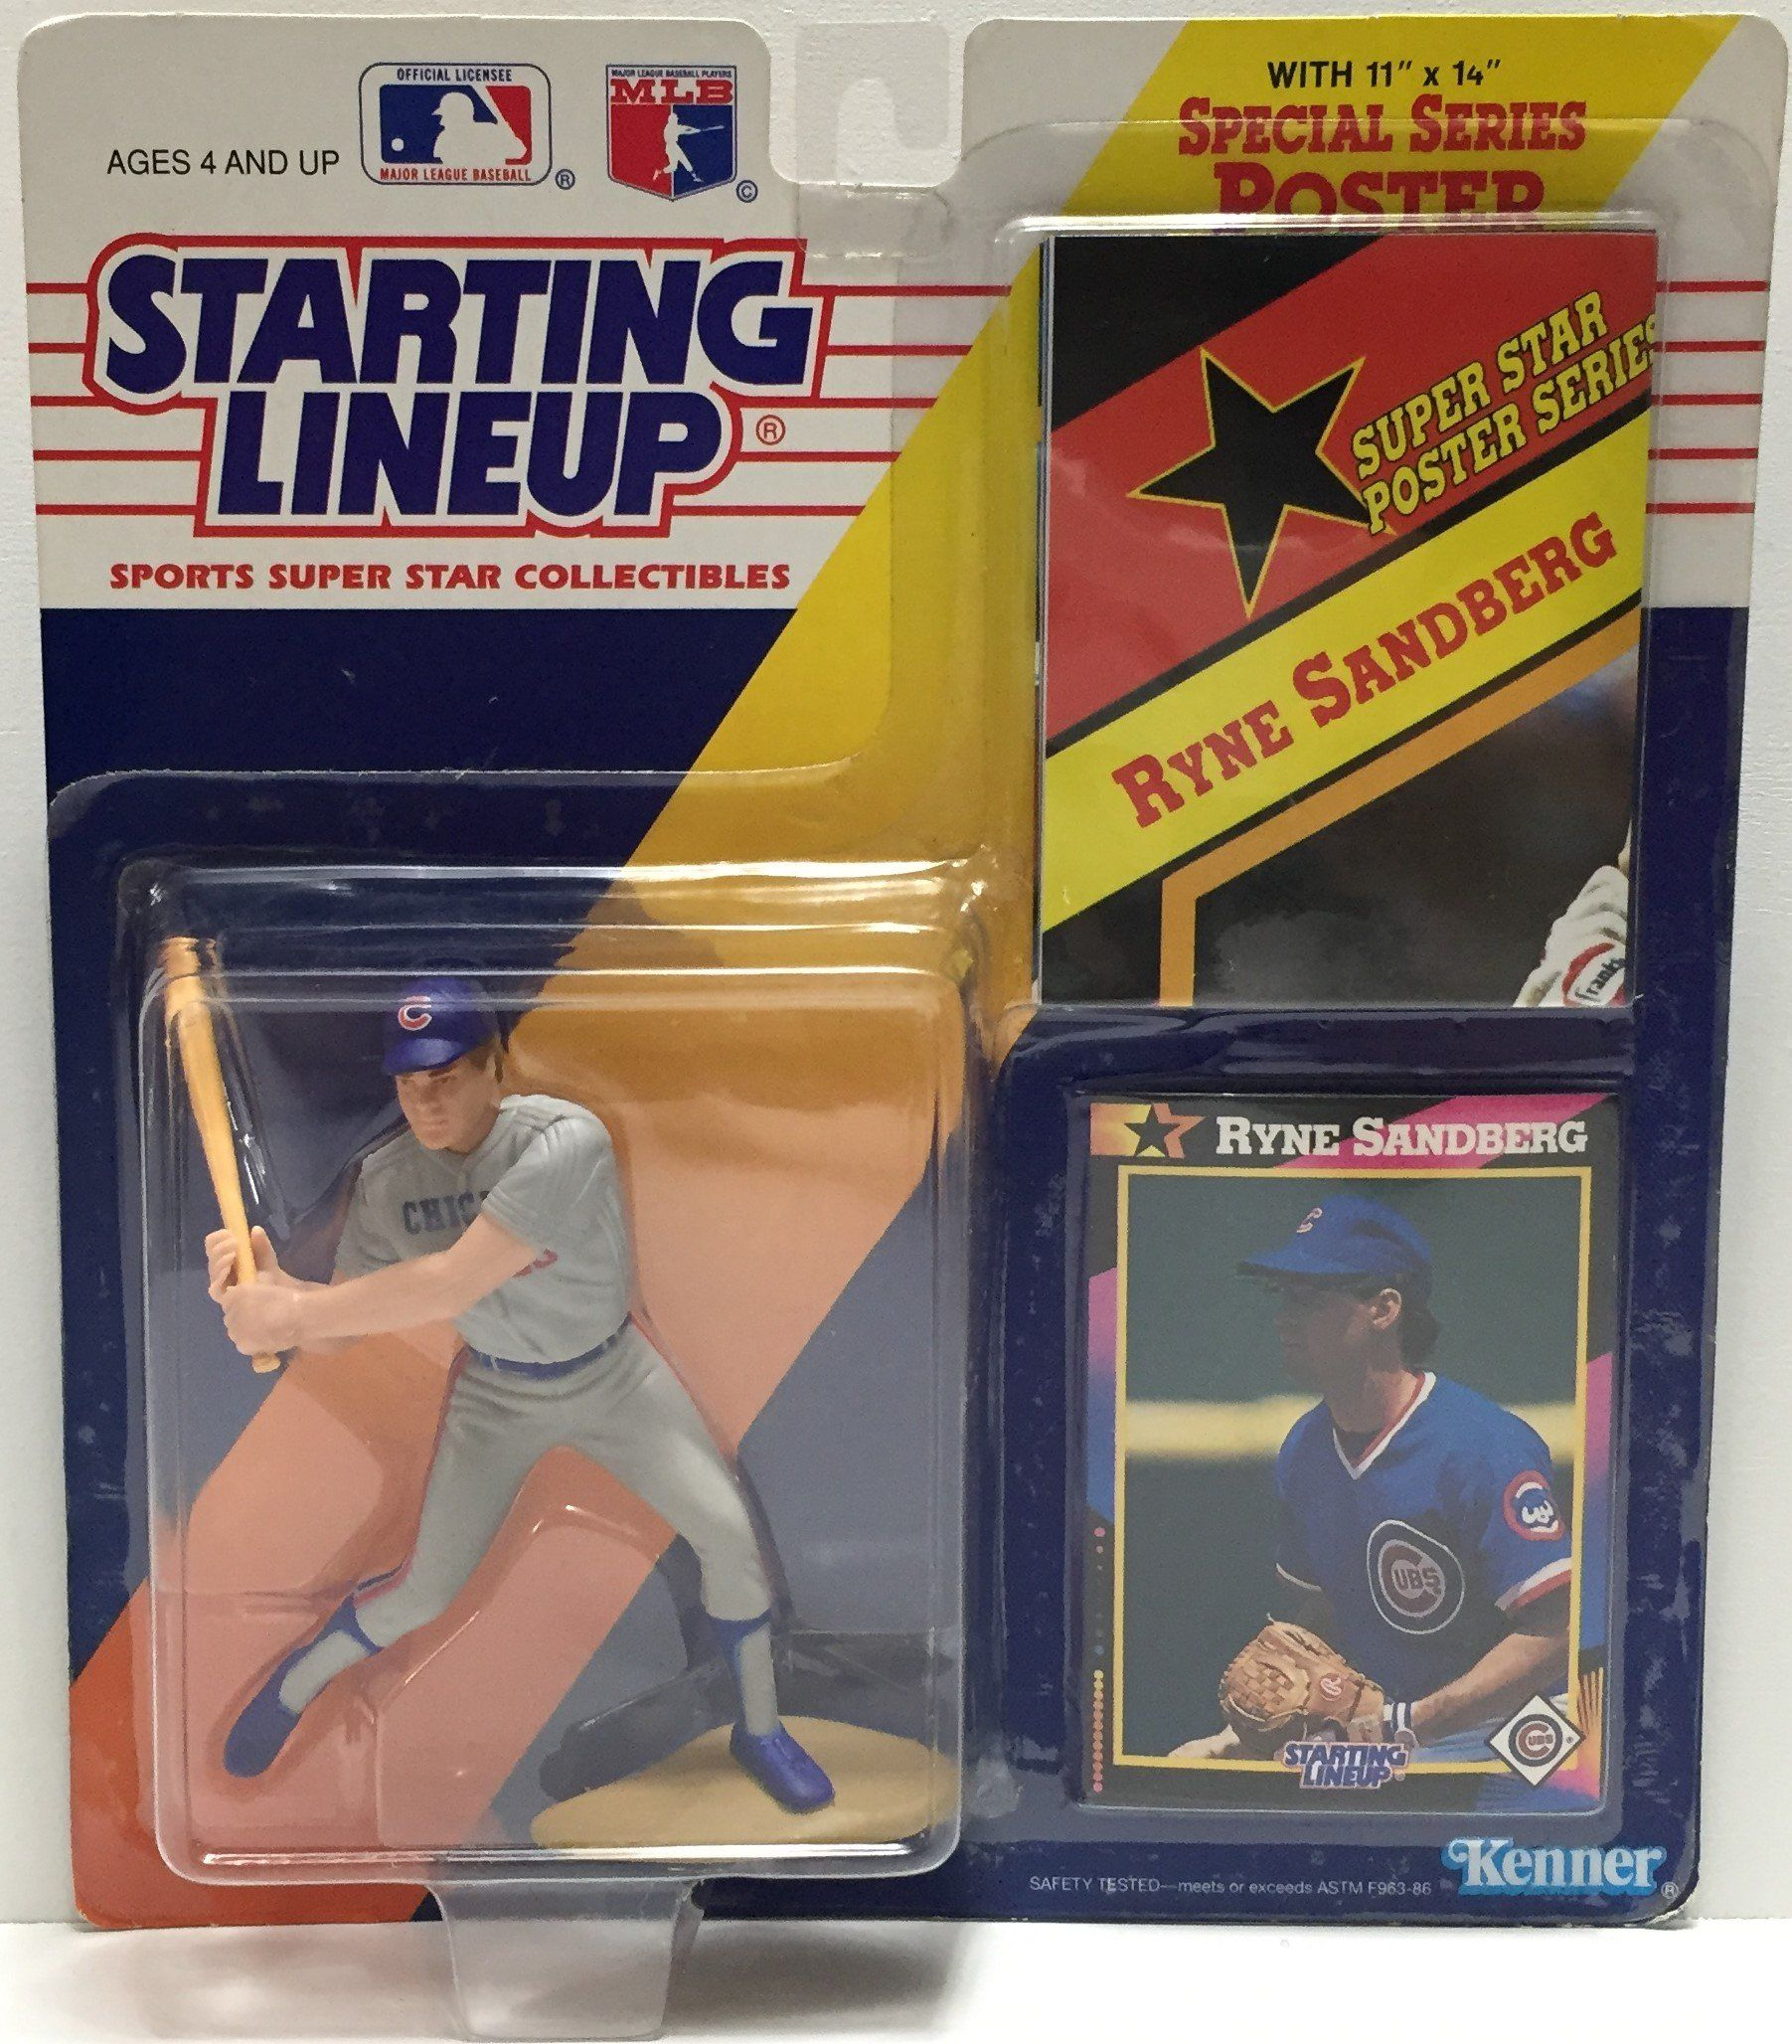 Starting Lineup Ryne Sandberg 1990 action figure